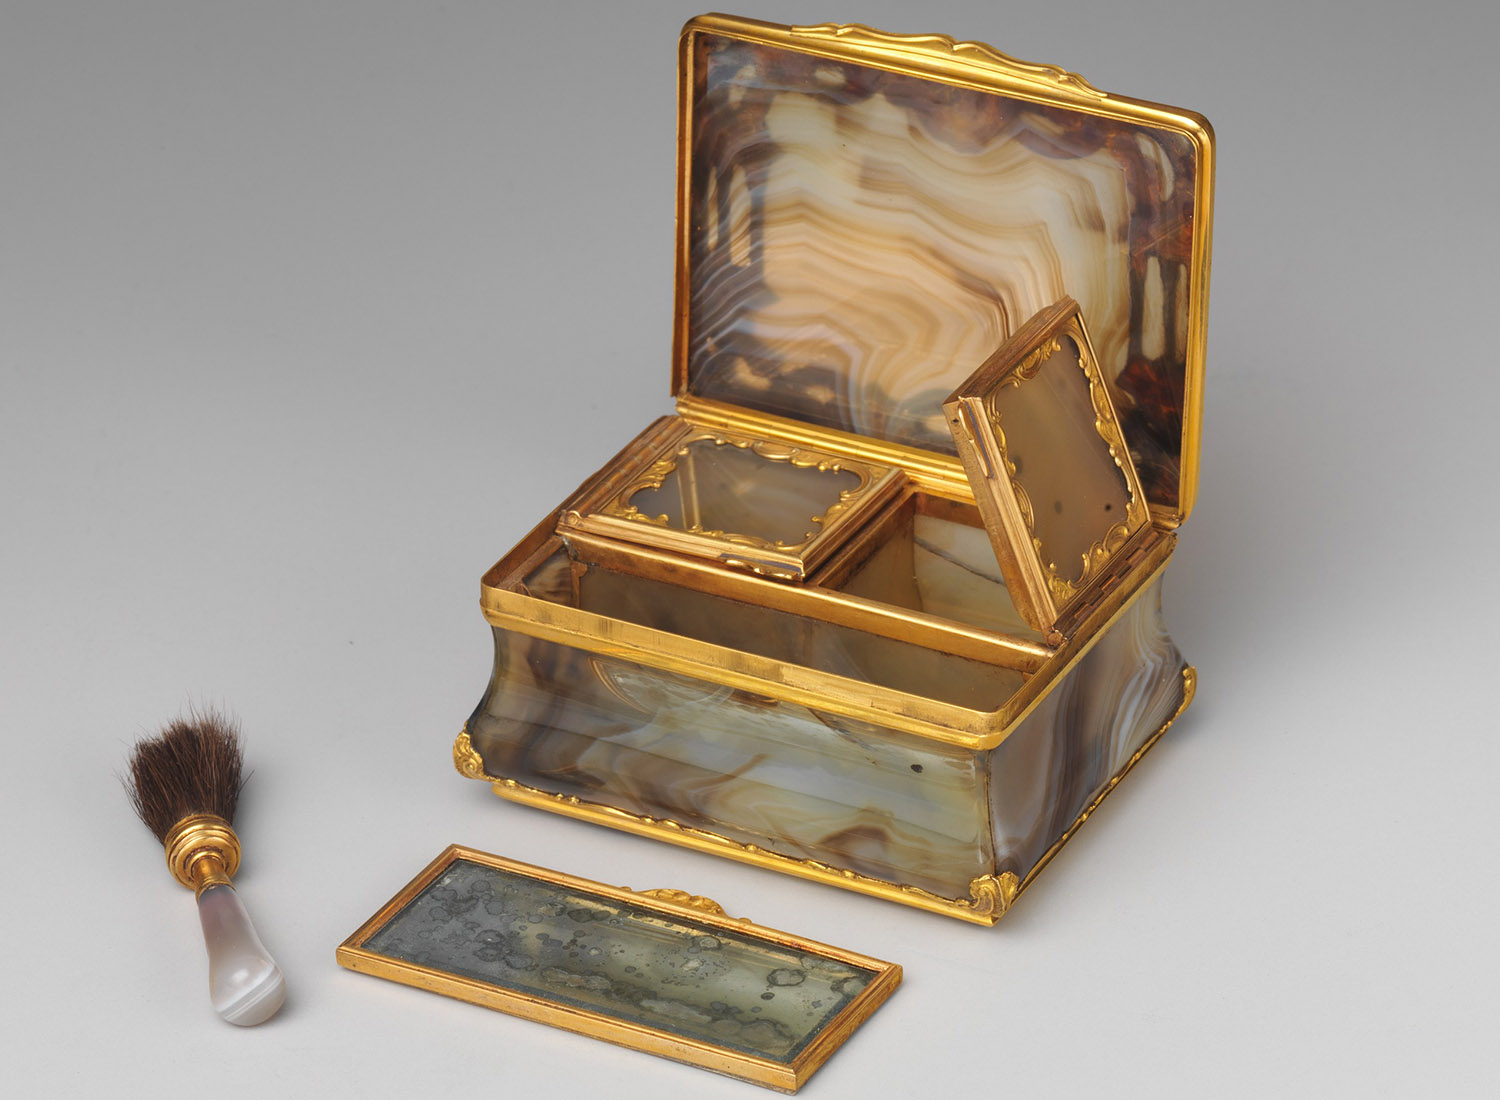 Resembling a snuffbox but smaller in size, this boîte à mouches contains two closed compartments—one to hold rouge and the other for black taffeta patches. A tiny brush and mirror were placed in the larger compartment.